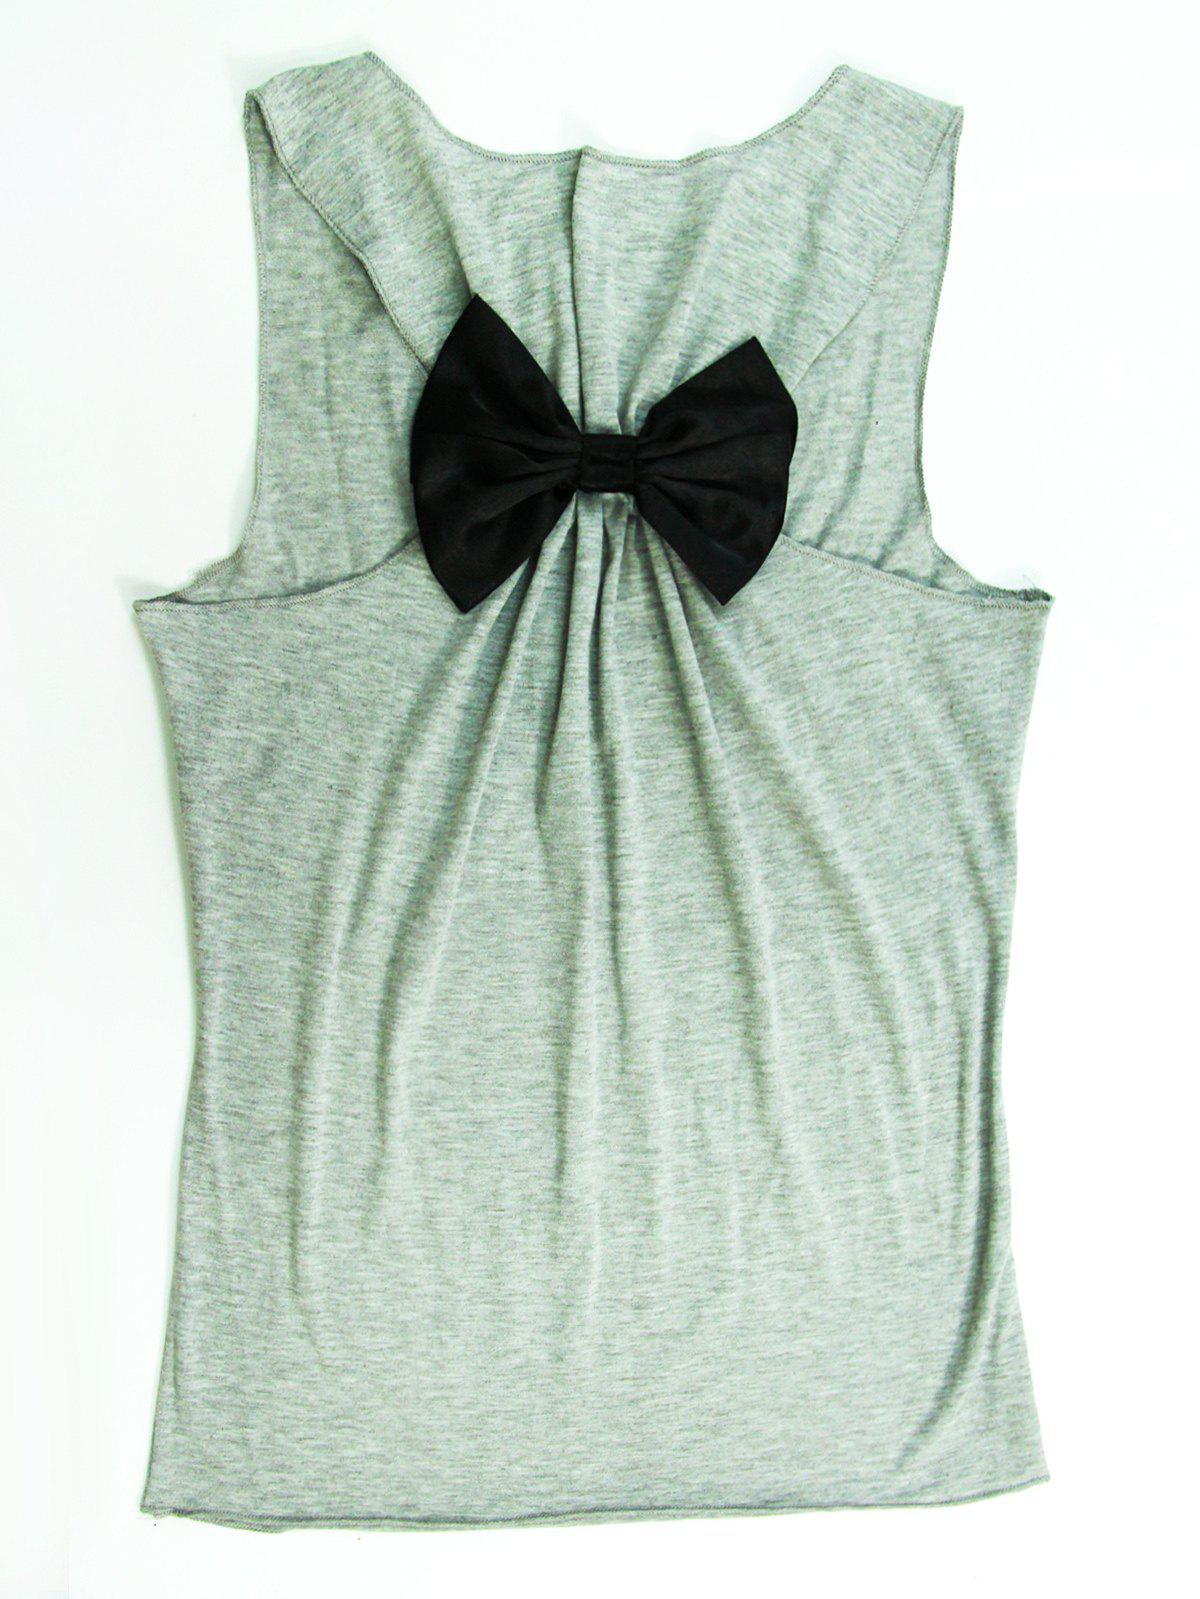 Stylish Scoop Neck Sleeveless Letter Print Bowknot Women's Tank Top - GRAY XL